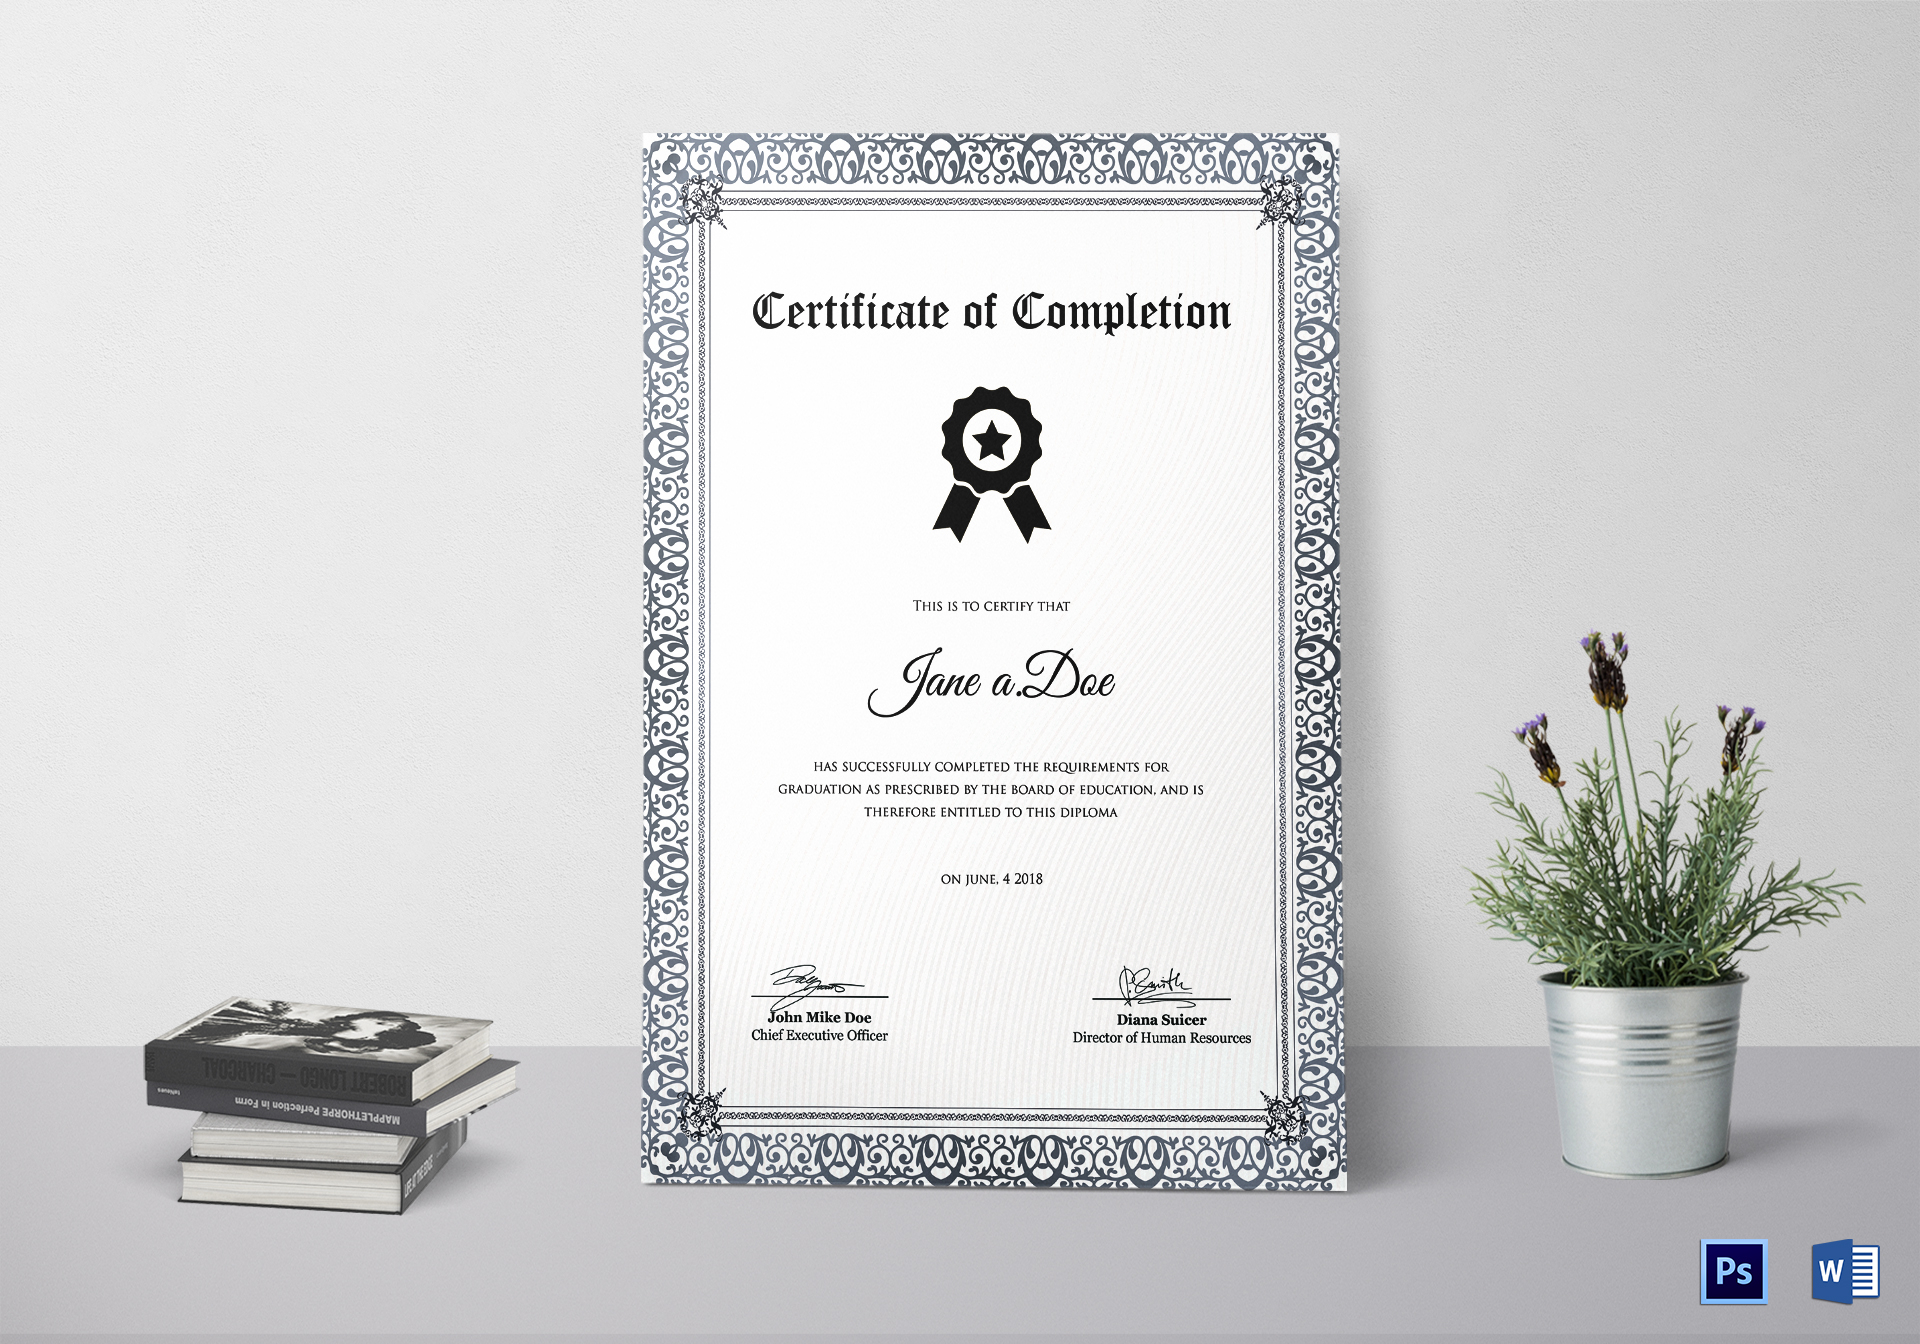 Diploma Education Completion Certificate Template